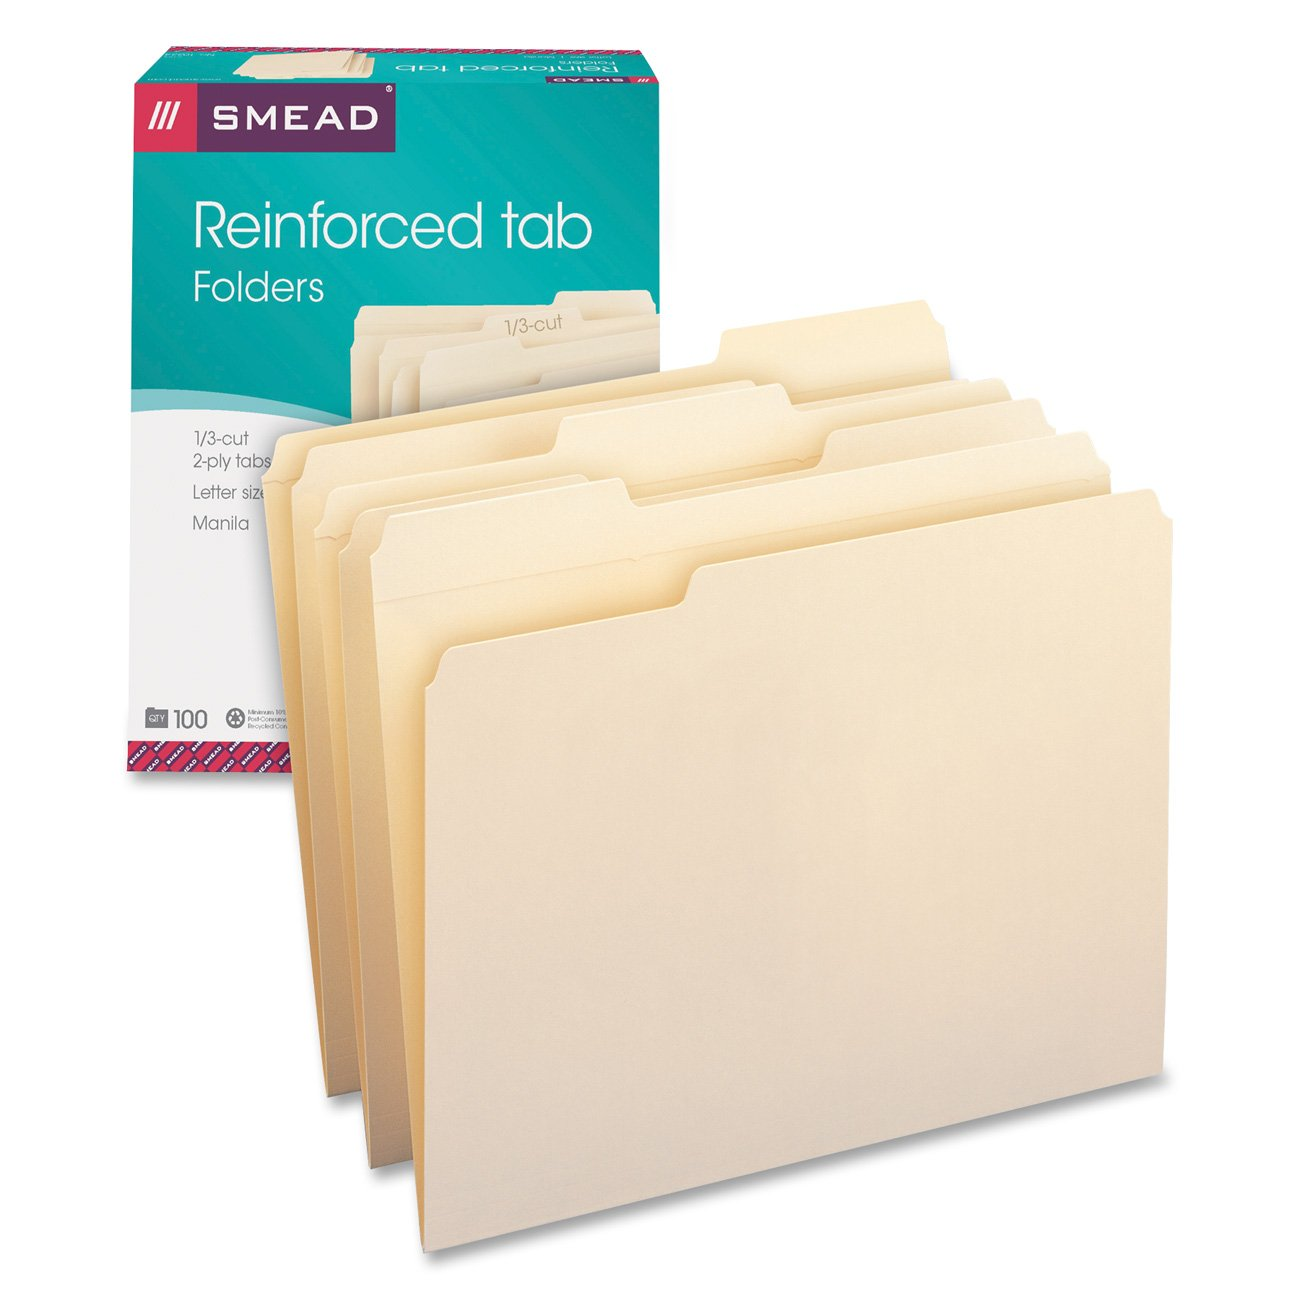 Smead 1/3-Cut Assorted Position File Folders, Reinforced Tab, 11 Point, Letter Size, Manila, 100 Per Box (10334)